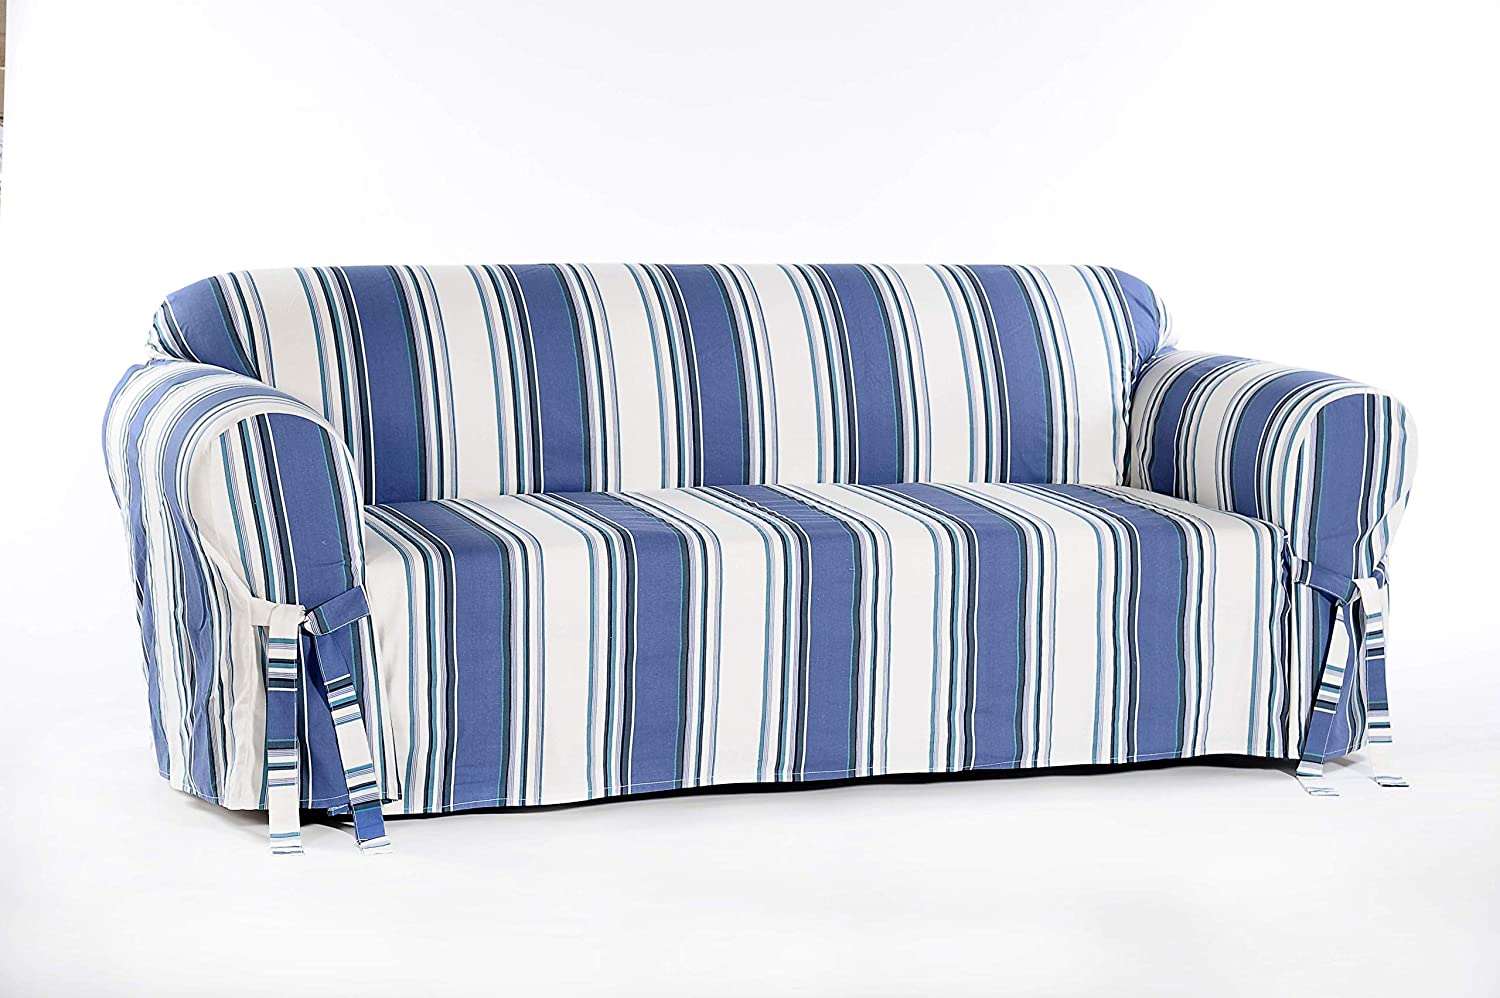 How to select slipcovers for chairs?